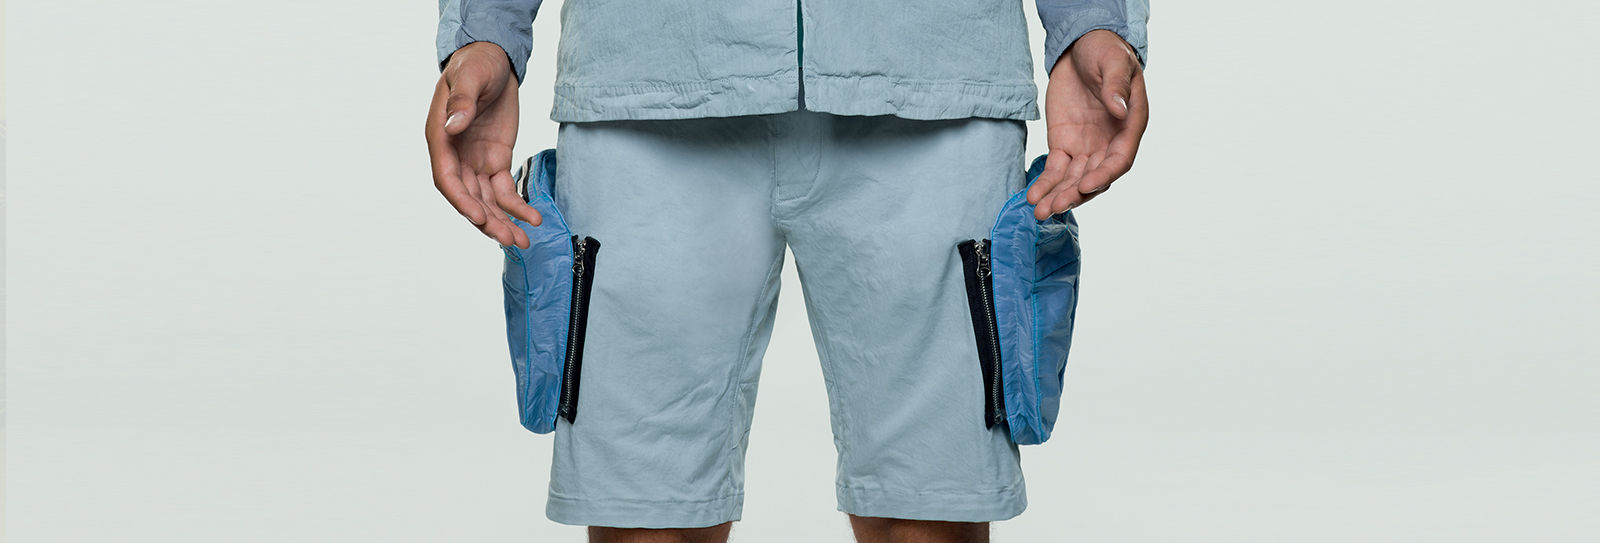 Model wearing light blue shorts with one large detachable pocket on each thigh in a different shade of blue, attached to the shorts with a black zipper.